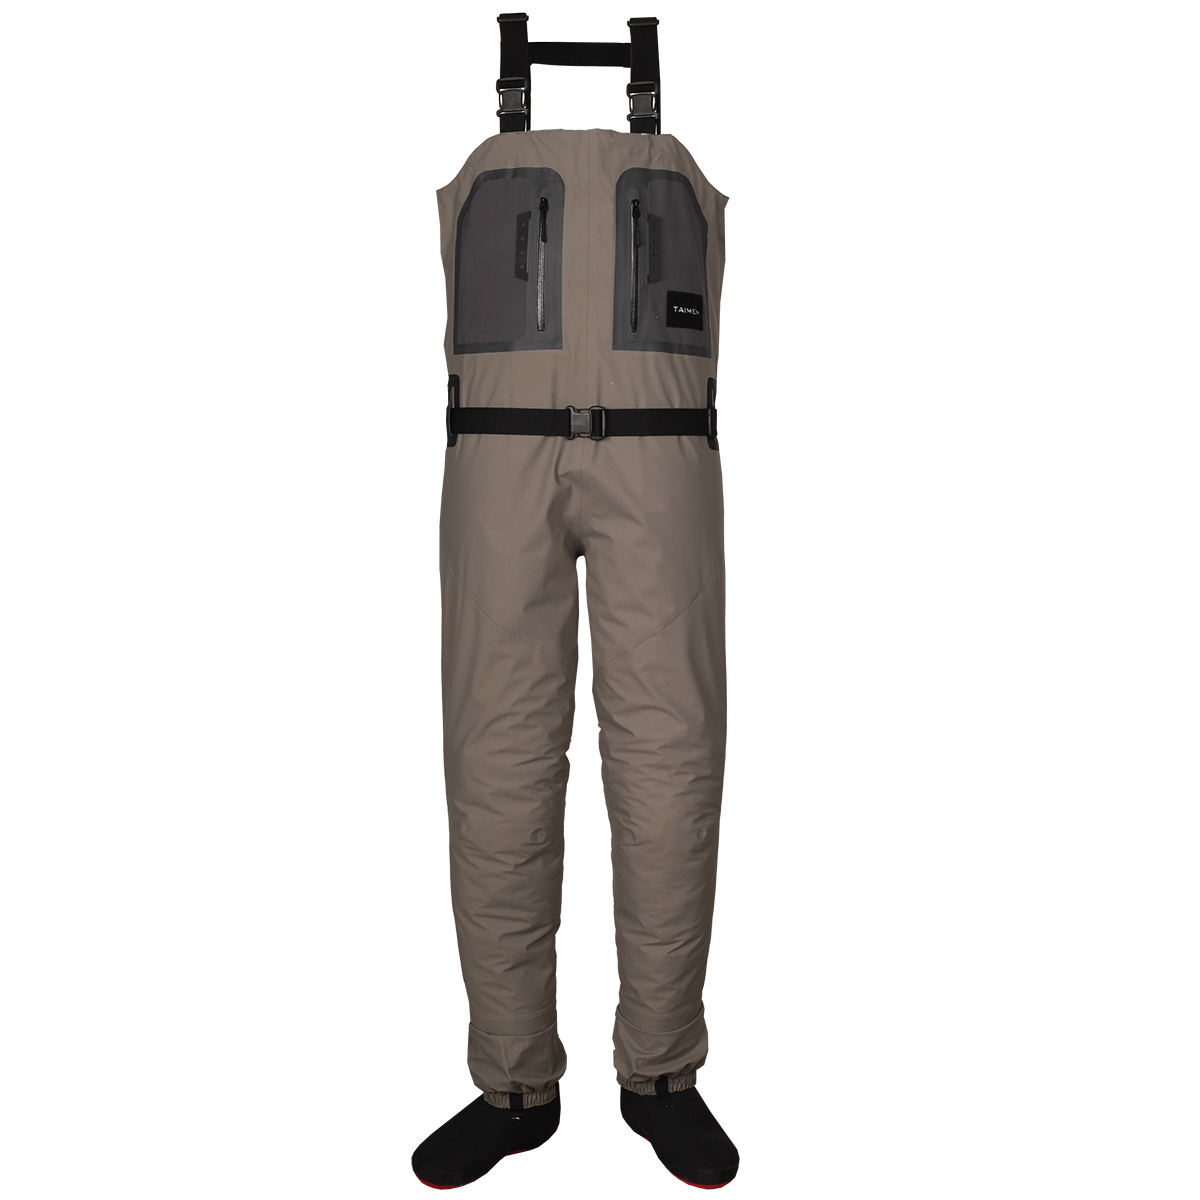 Taimen river sonic waders fishing waders chest hip and for Chest waders for fishing